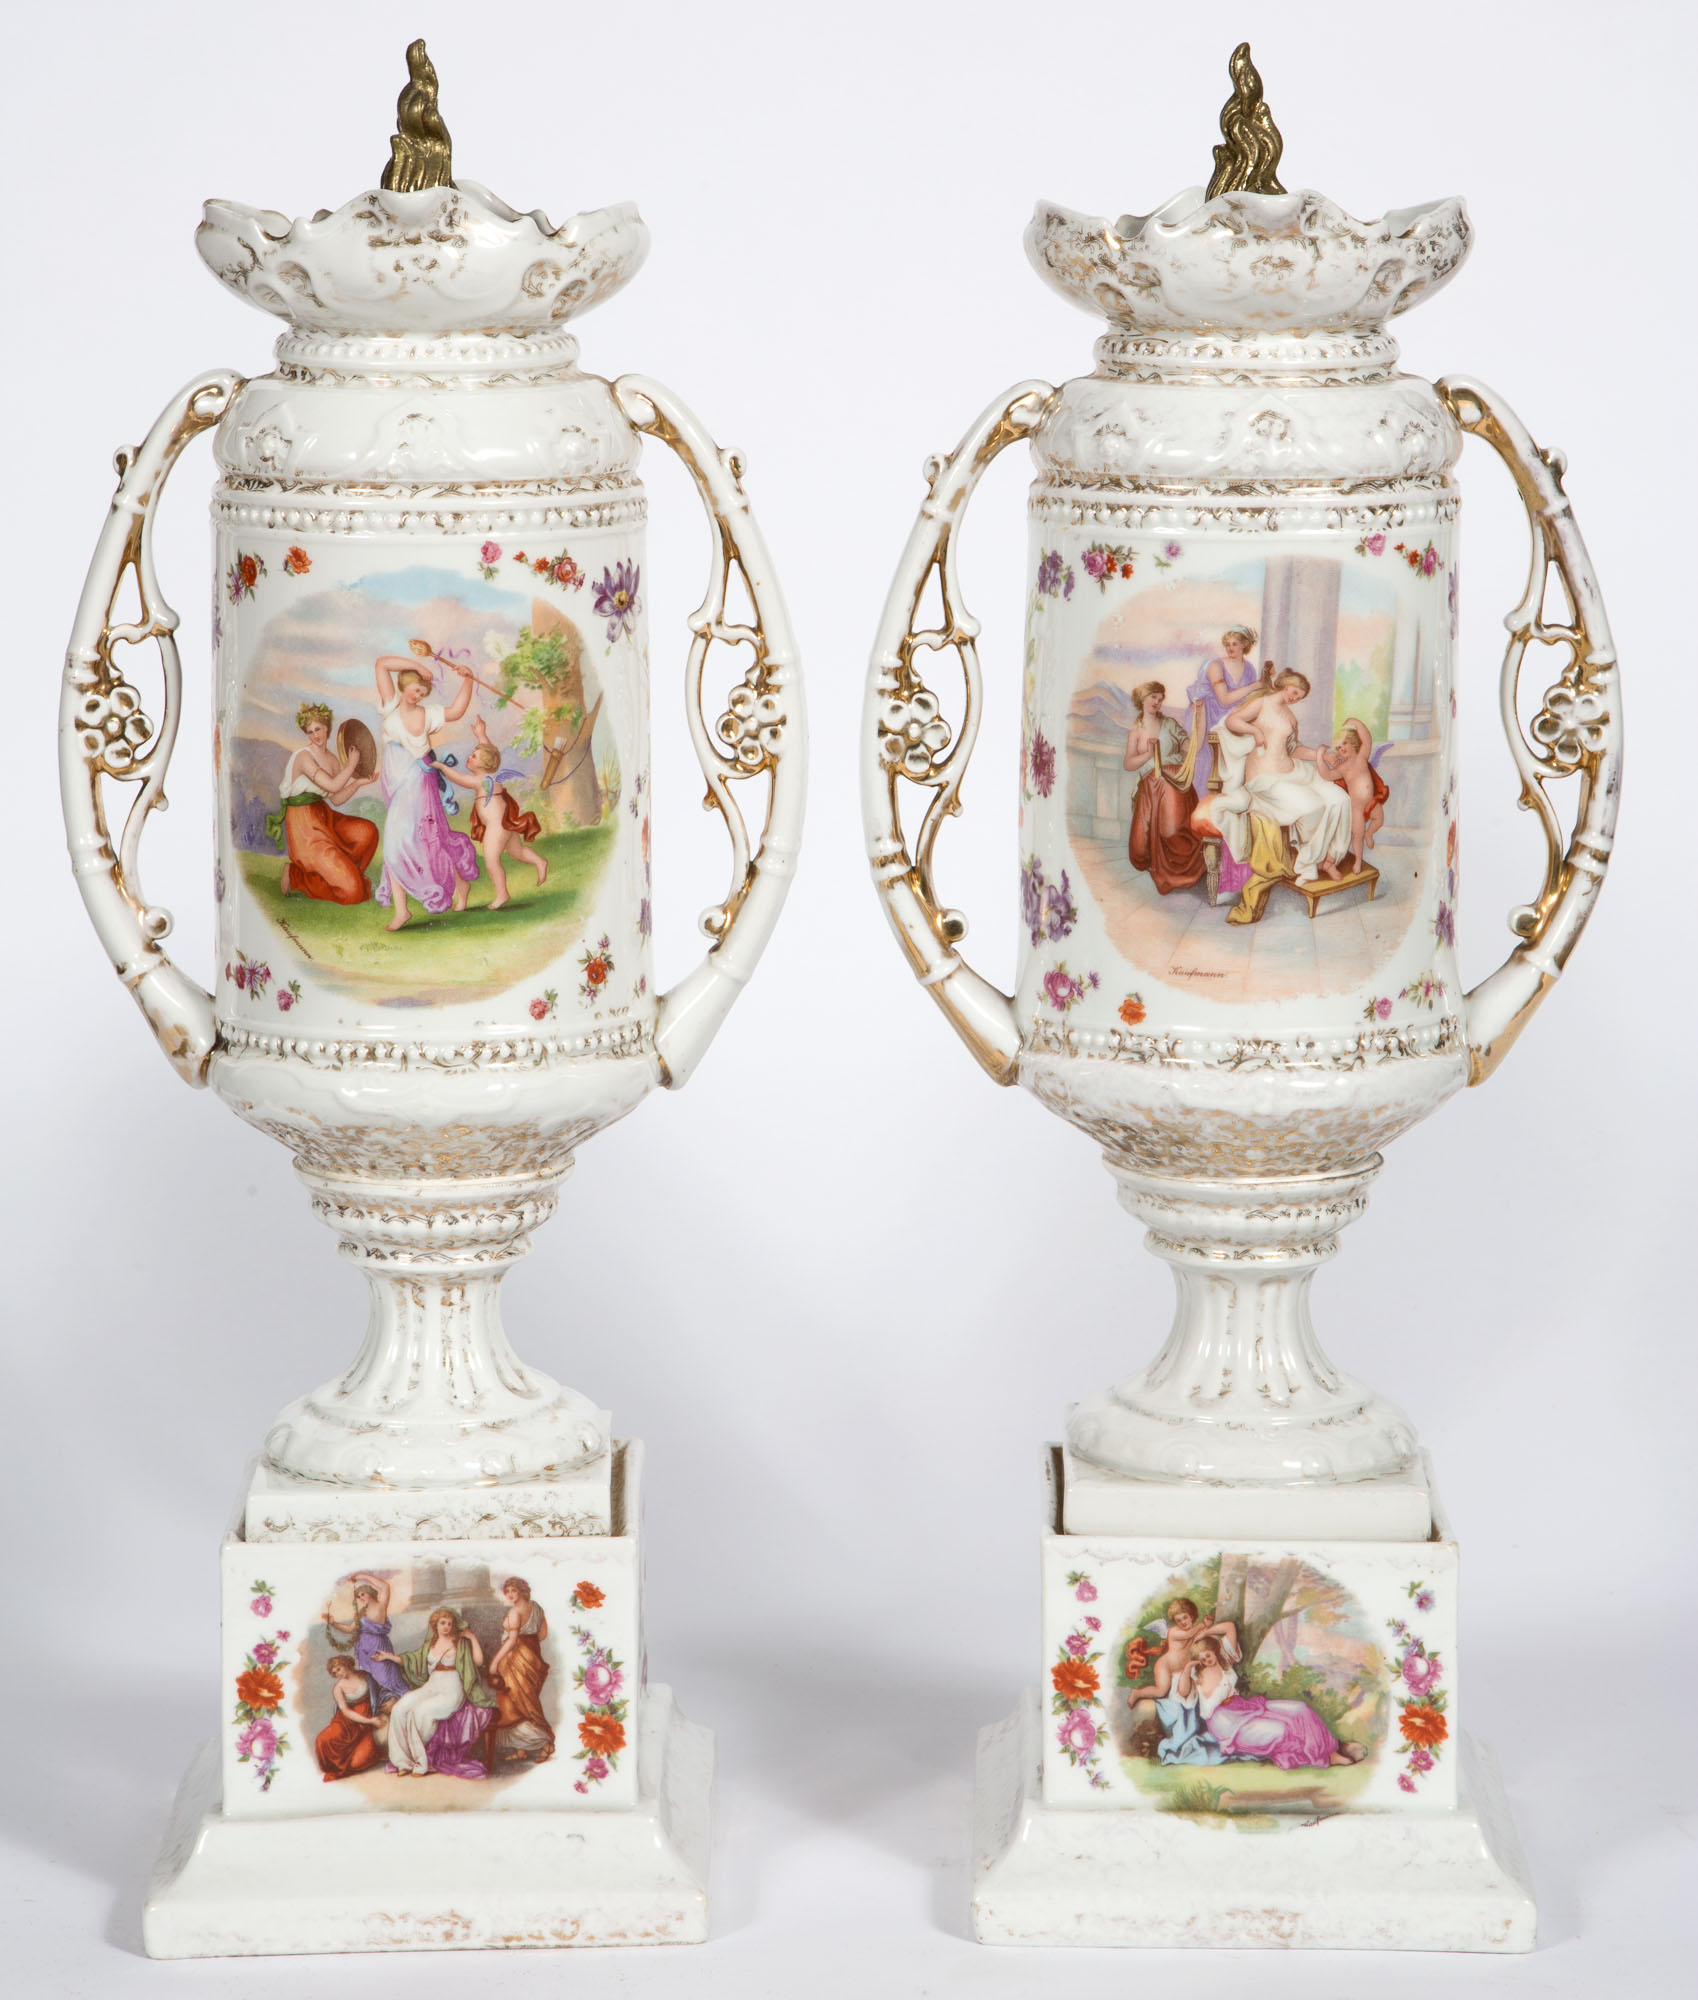 Lot image - Pair of Continental Gilt-Metal Mounted Gilt and Transfer Print Decorated Porcelain Two-Handled Covered Urns on Pedestals